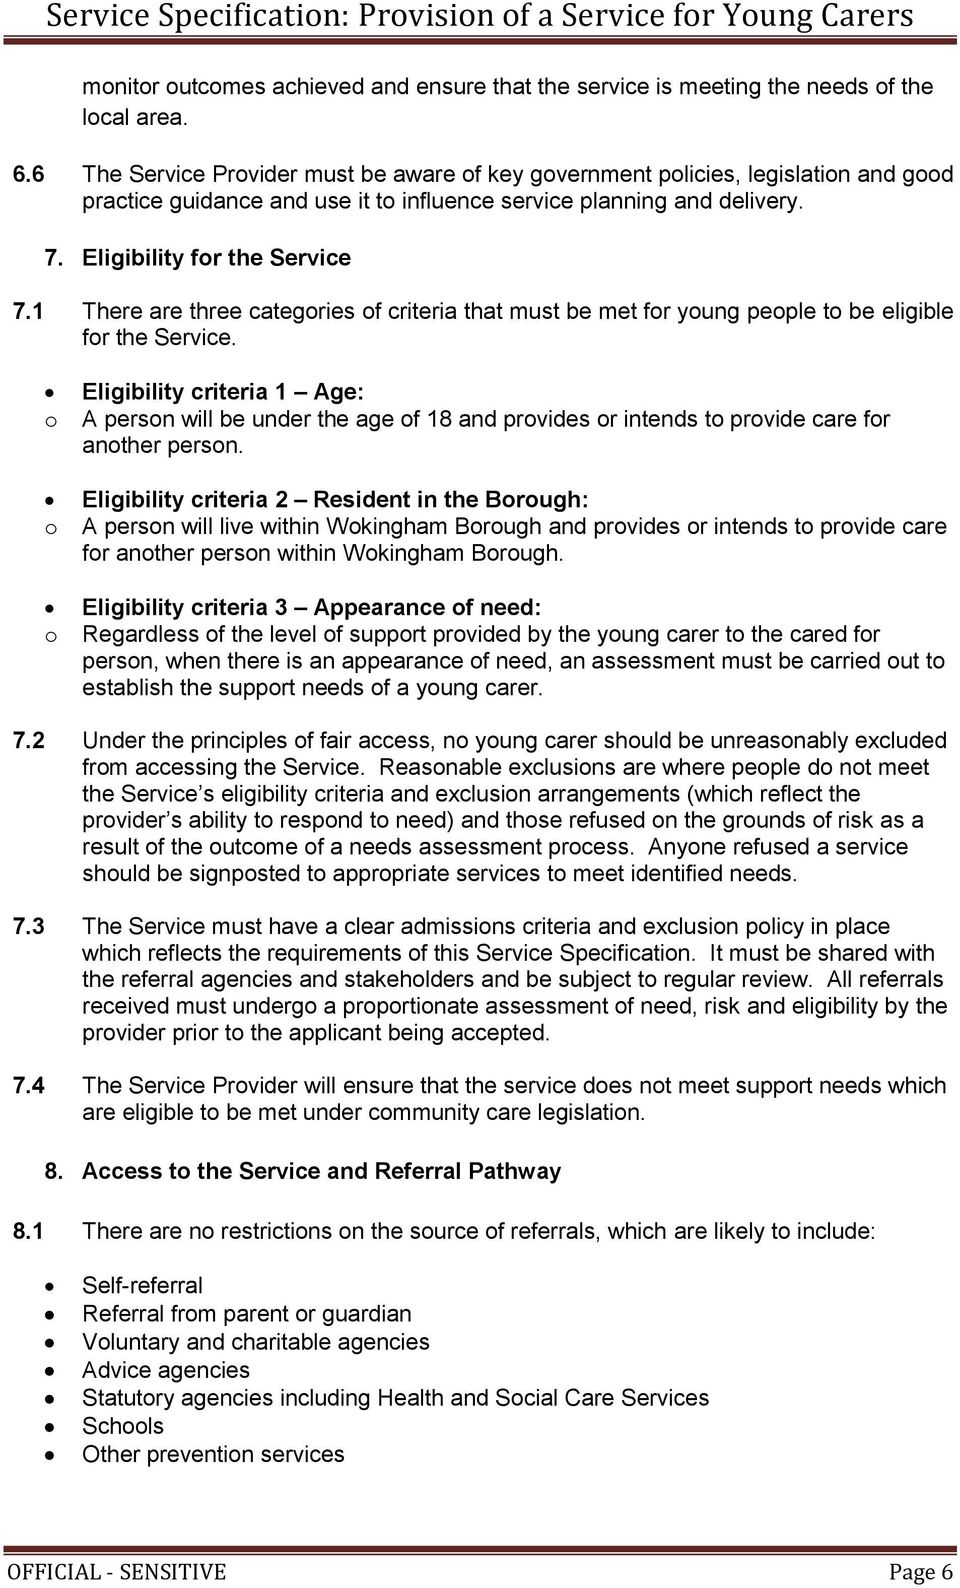 1 There are three categories of criteria that must be met for young people to be eligible for the Service.